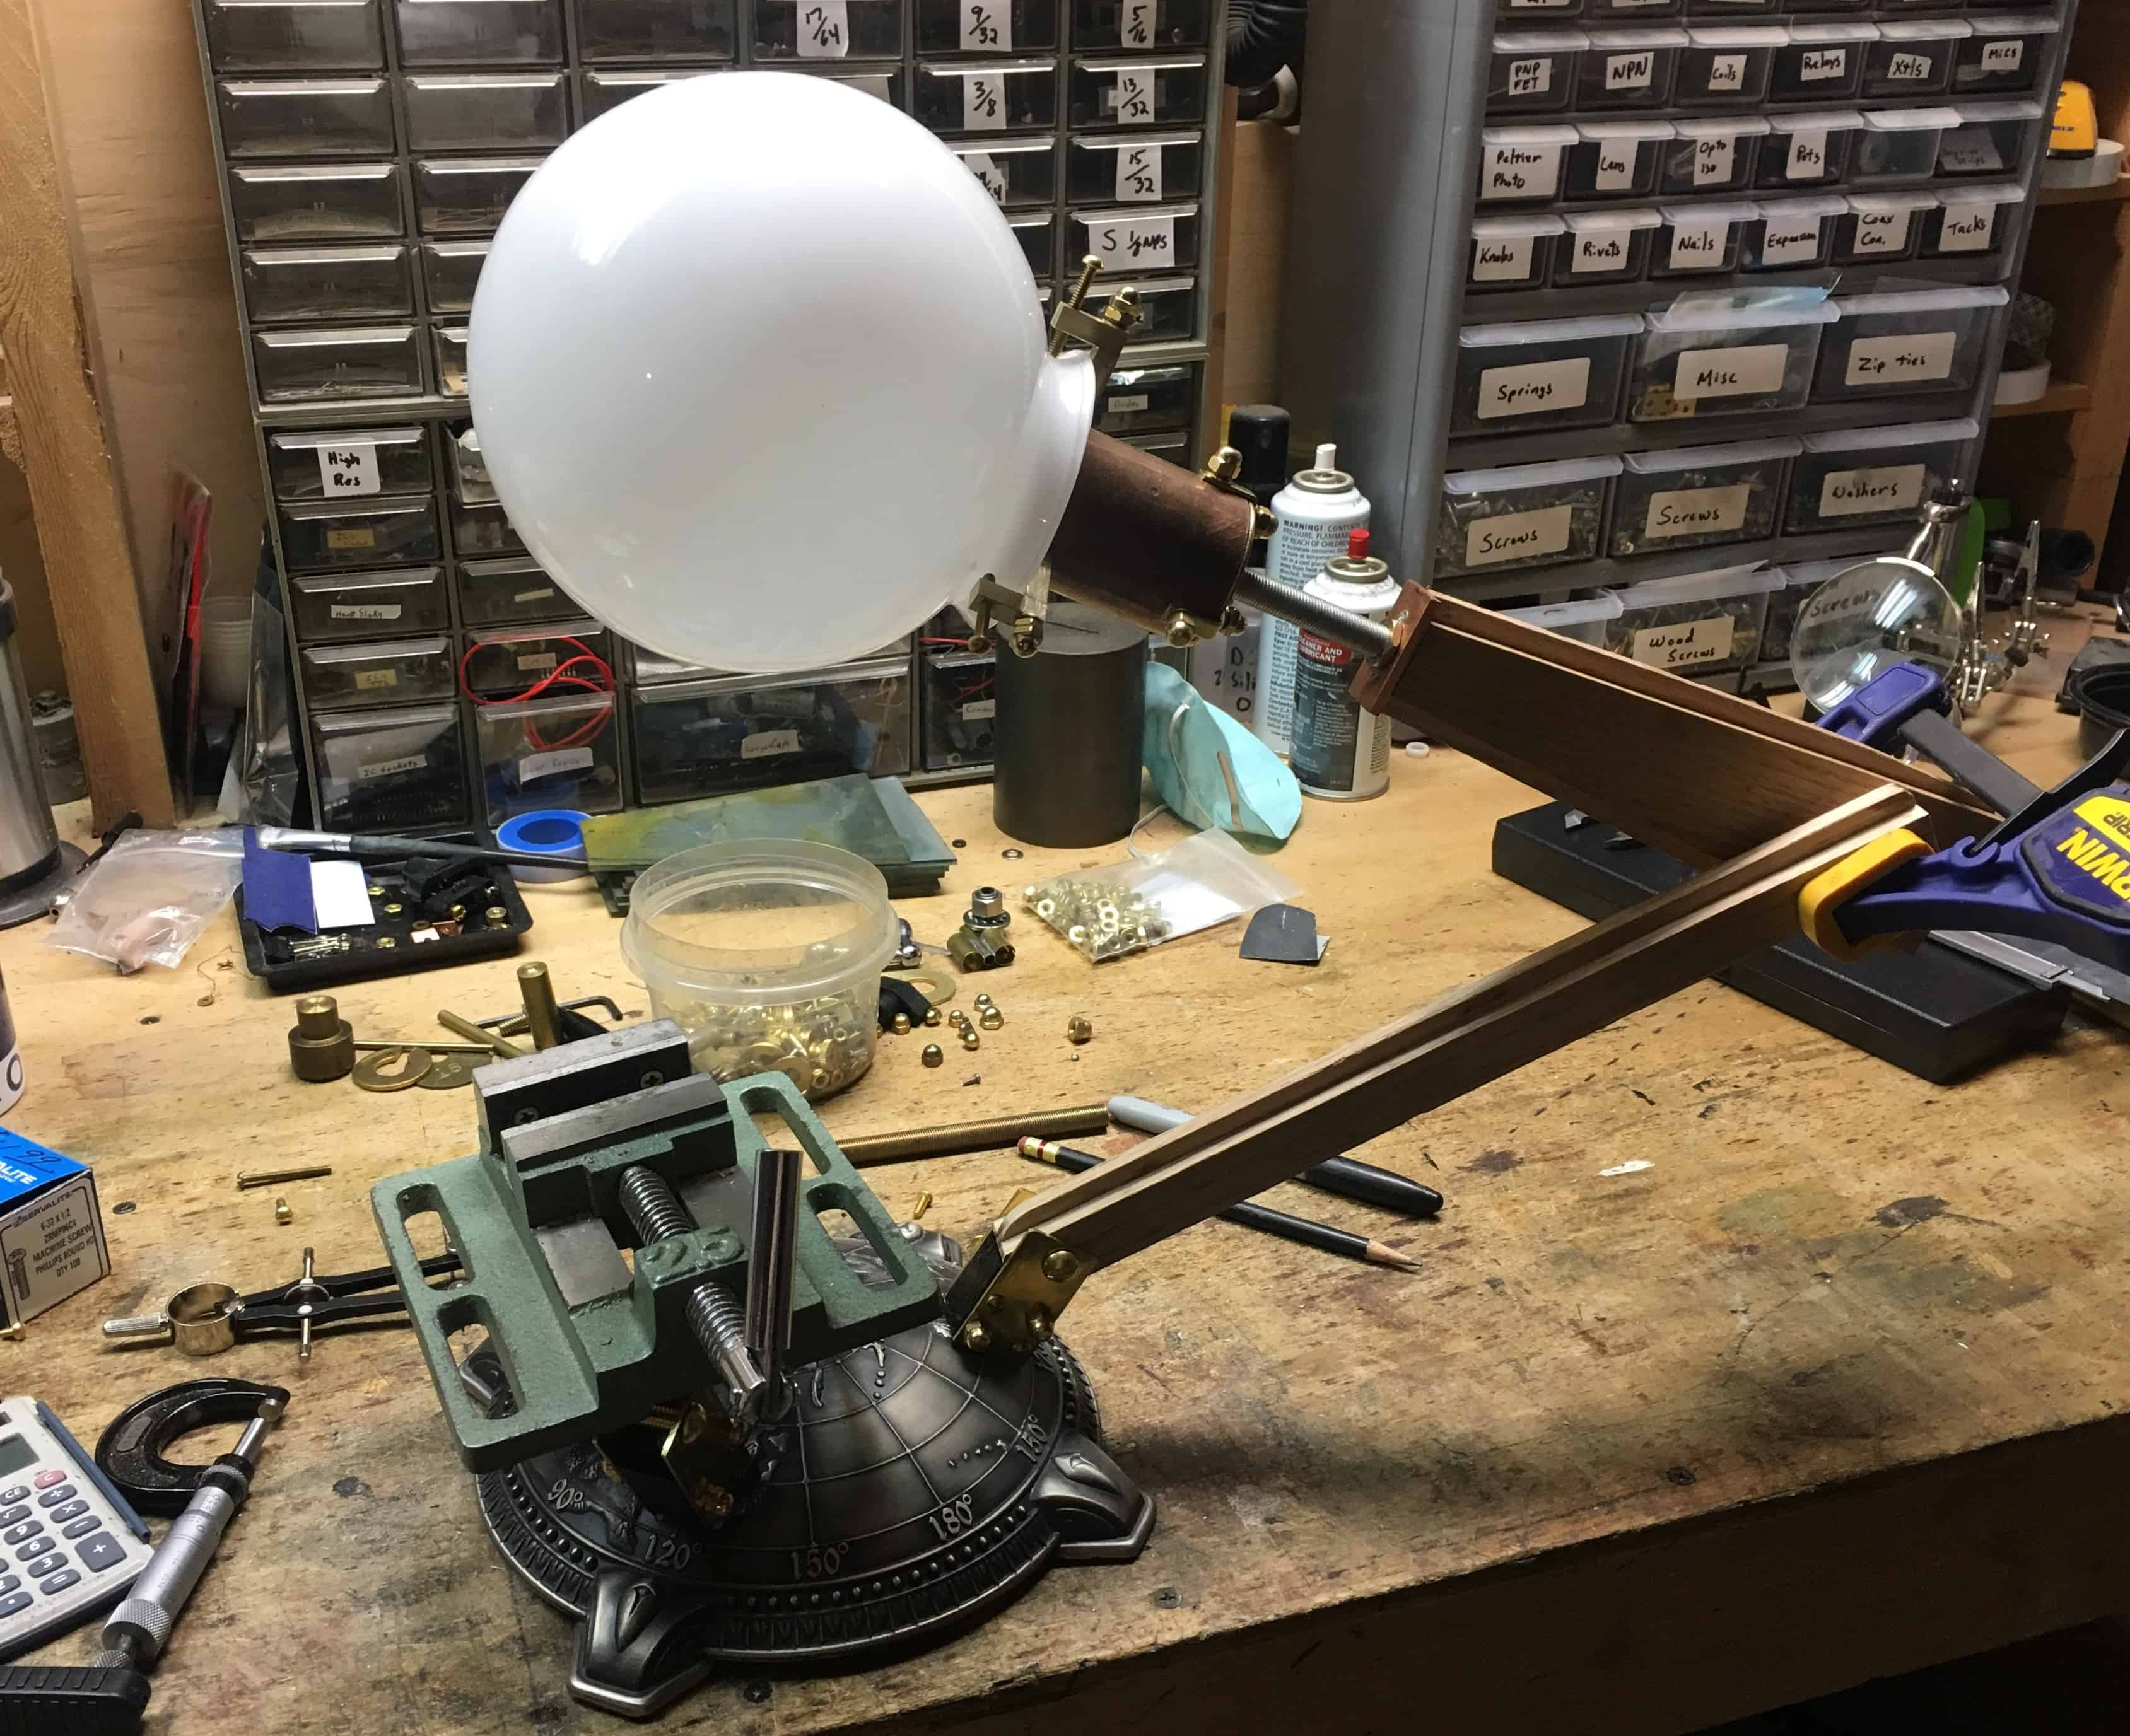 46 Globe arm in place